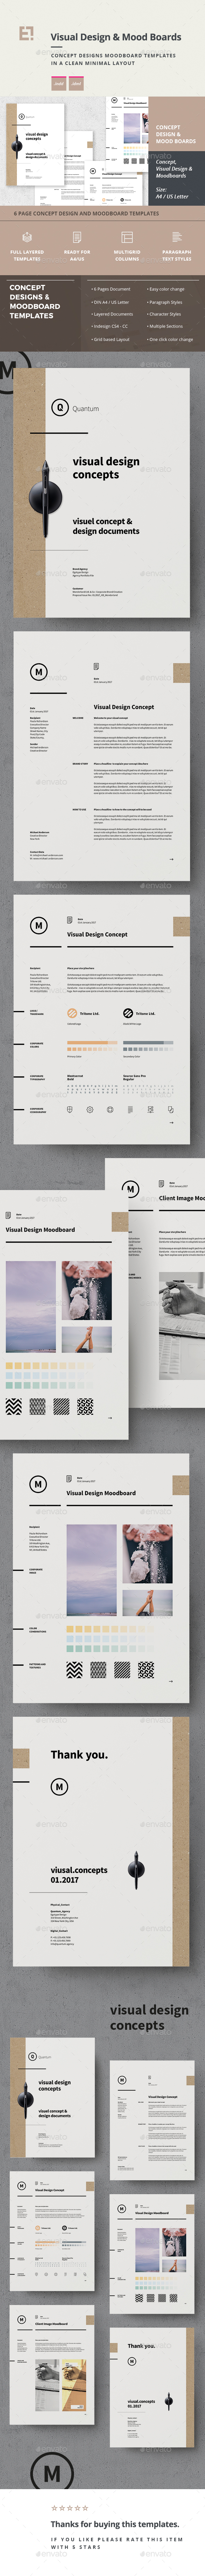 Concept Design Mood Board Templates - Proposals & Invoices Stationery